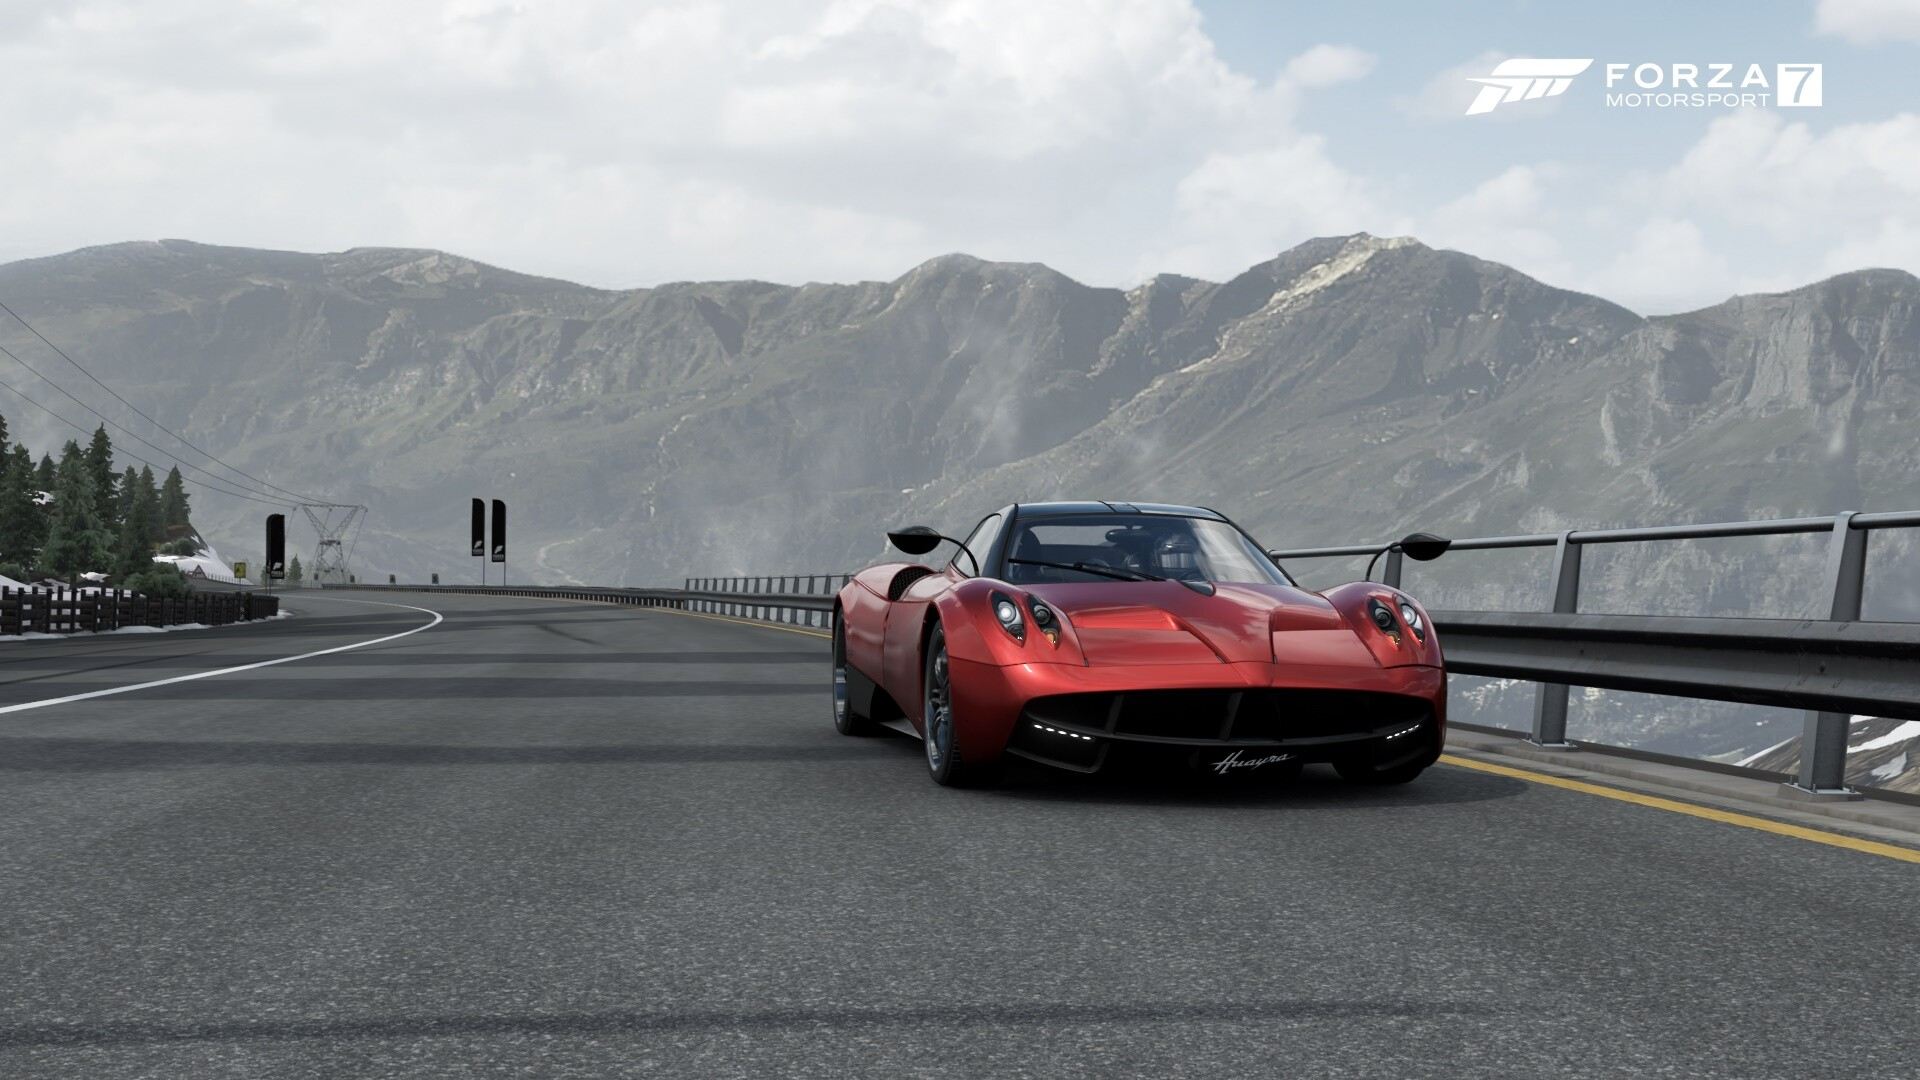 Background reference image I took in Forza Motorsport 7